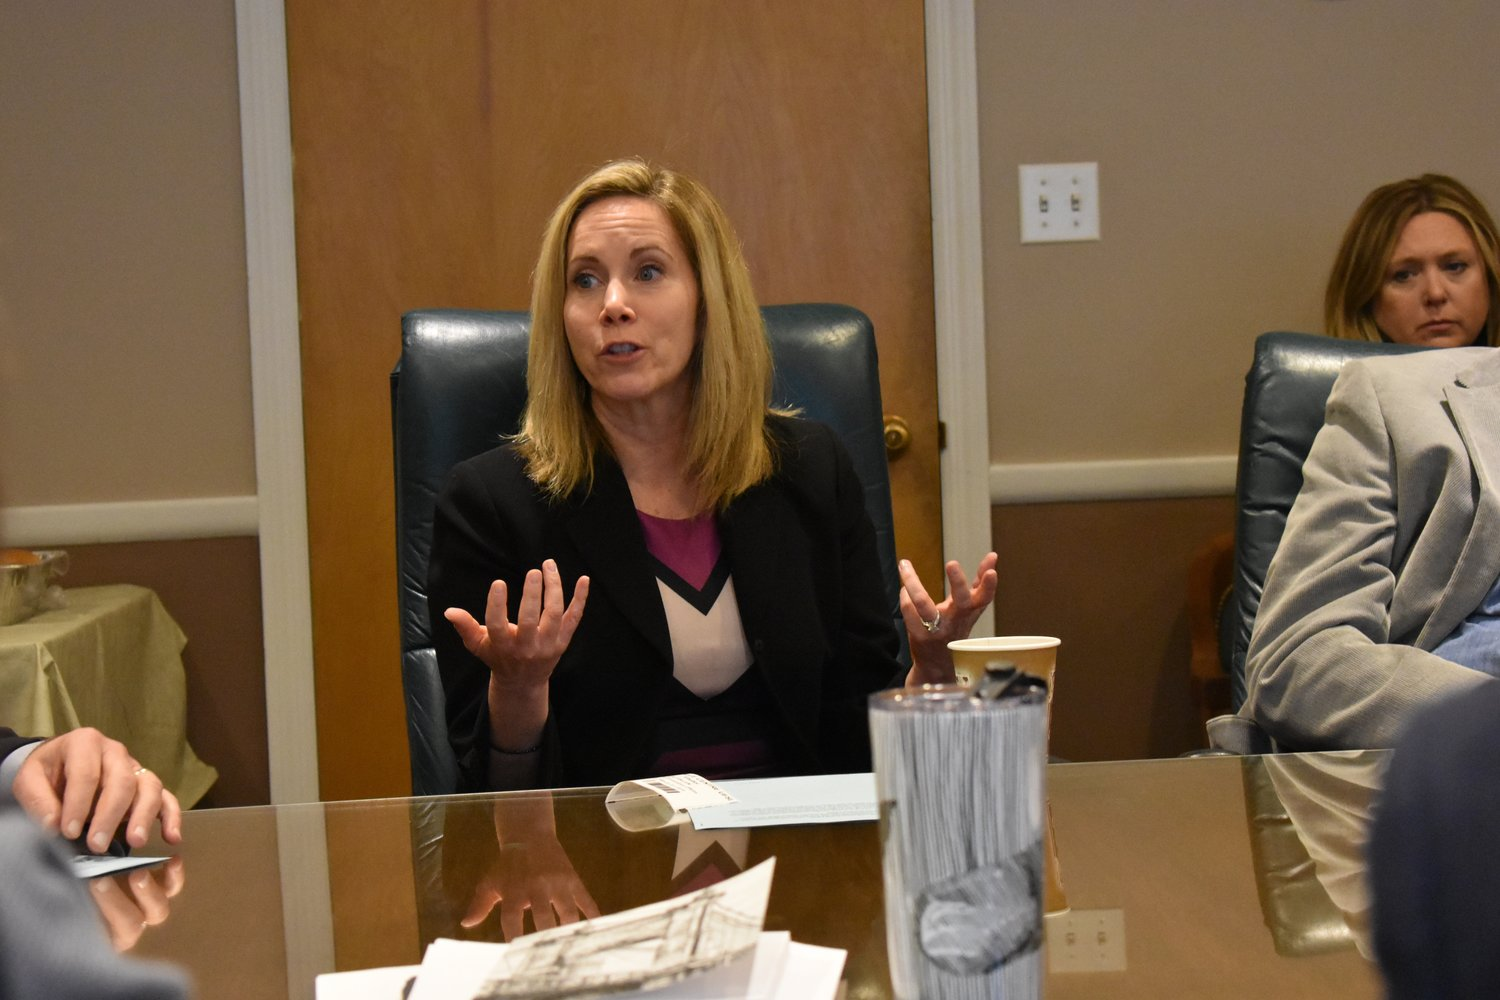 Hempstead Town Supervisor Laura Gillen noted that the town enacted a one-year moratorium on weed sales within its borders, and a ban on smoking it in town parks and facilities.